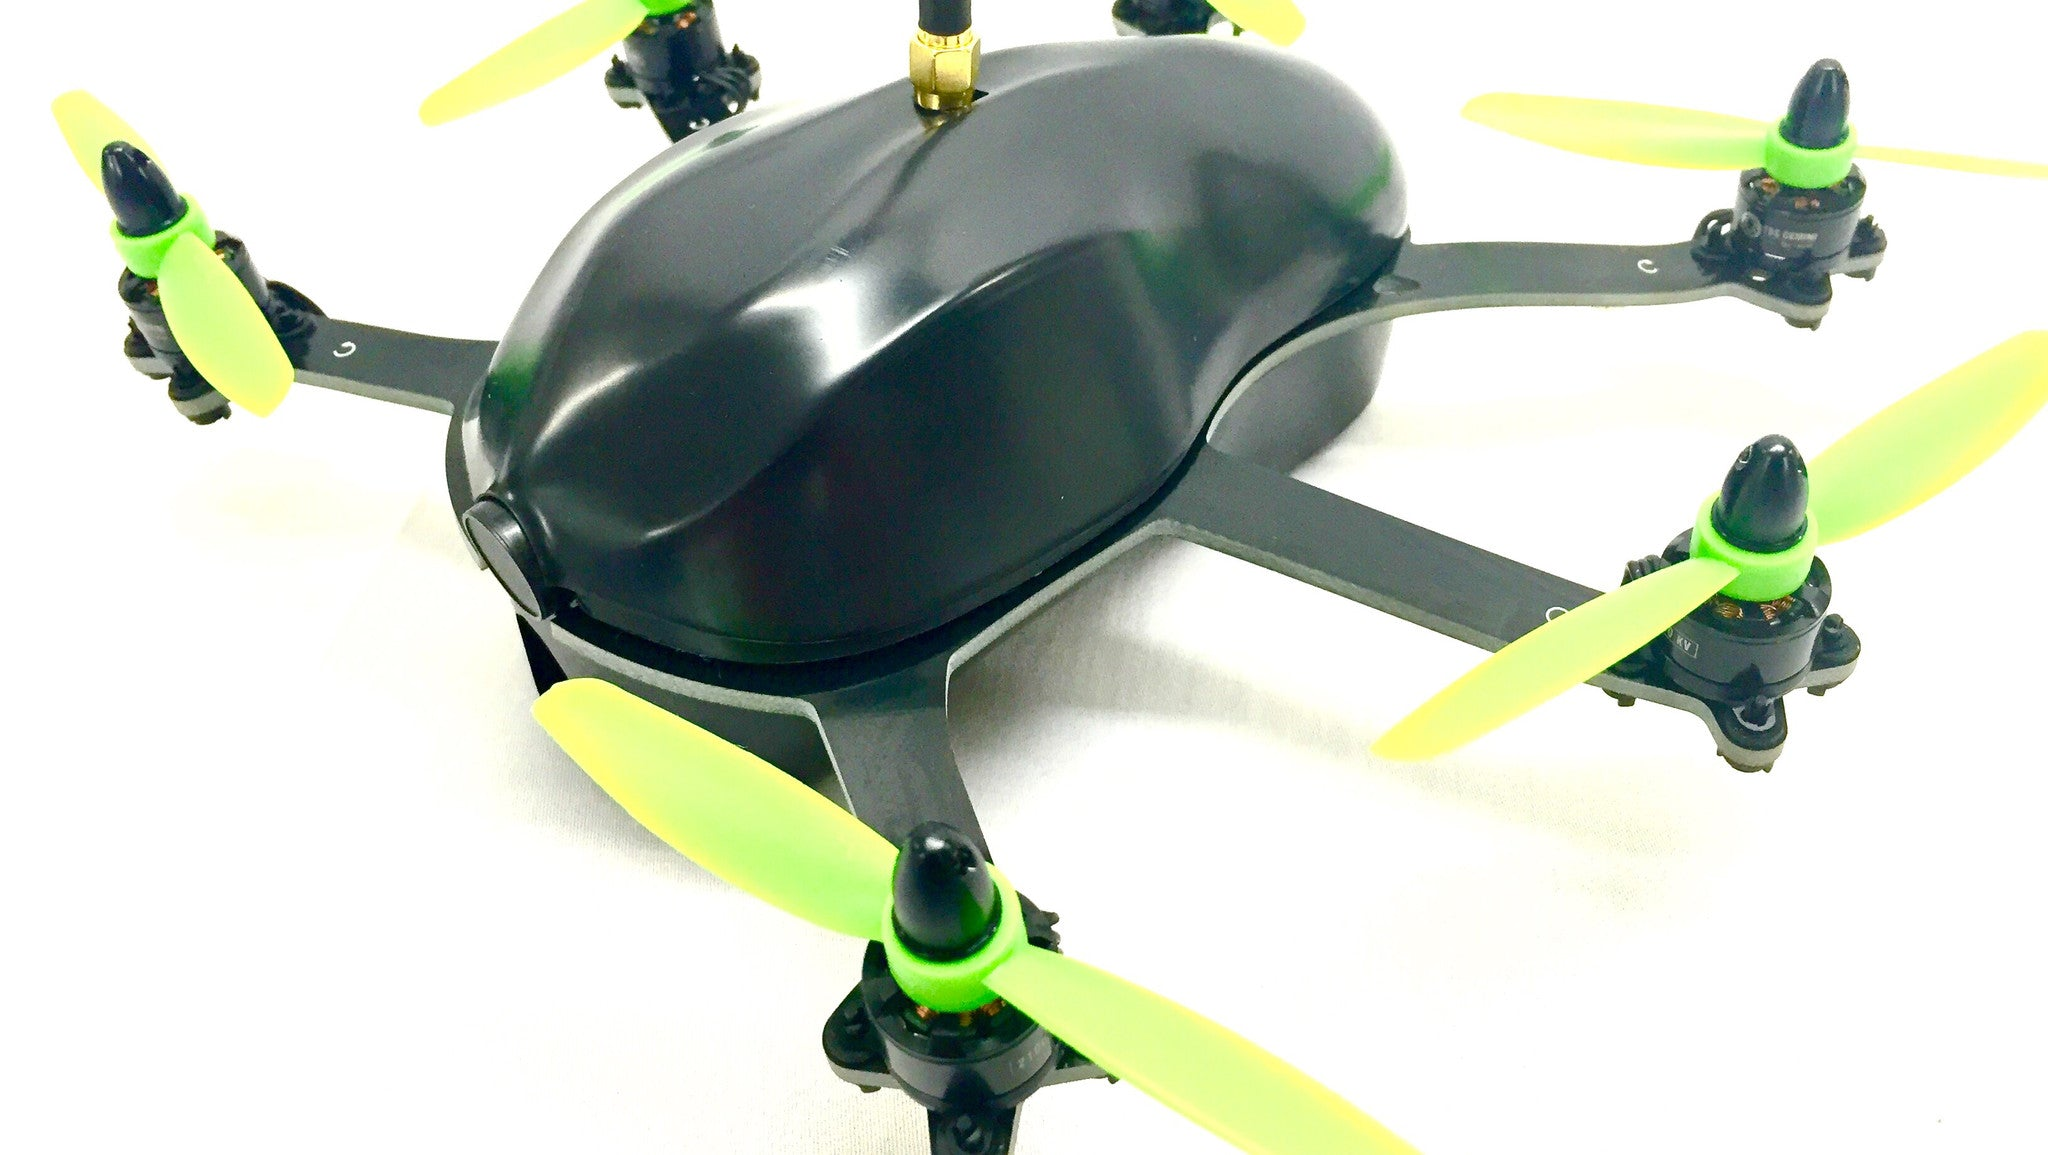 Team Blacksheep Gemini Mini-Hexakopter BNF